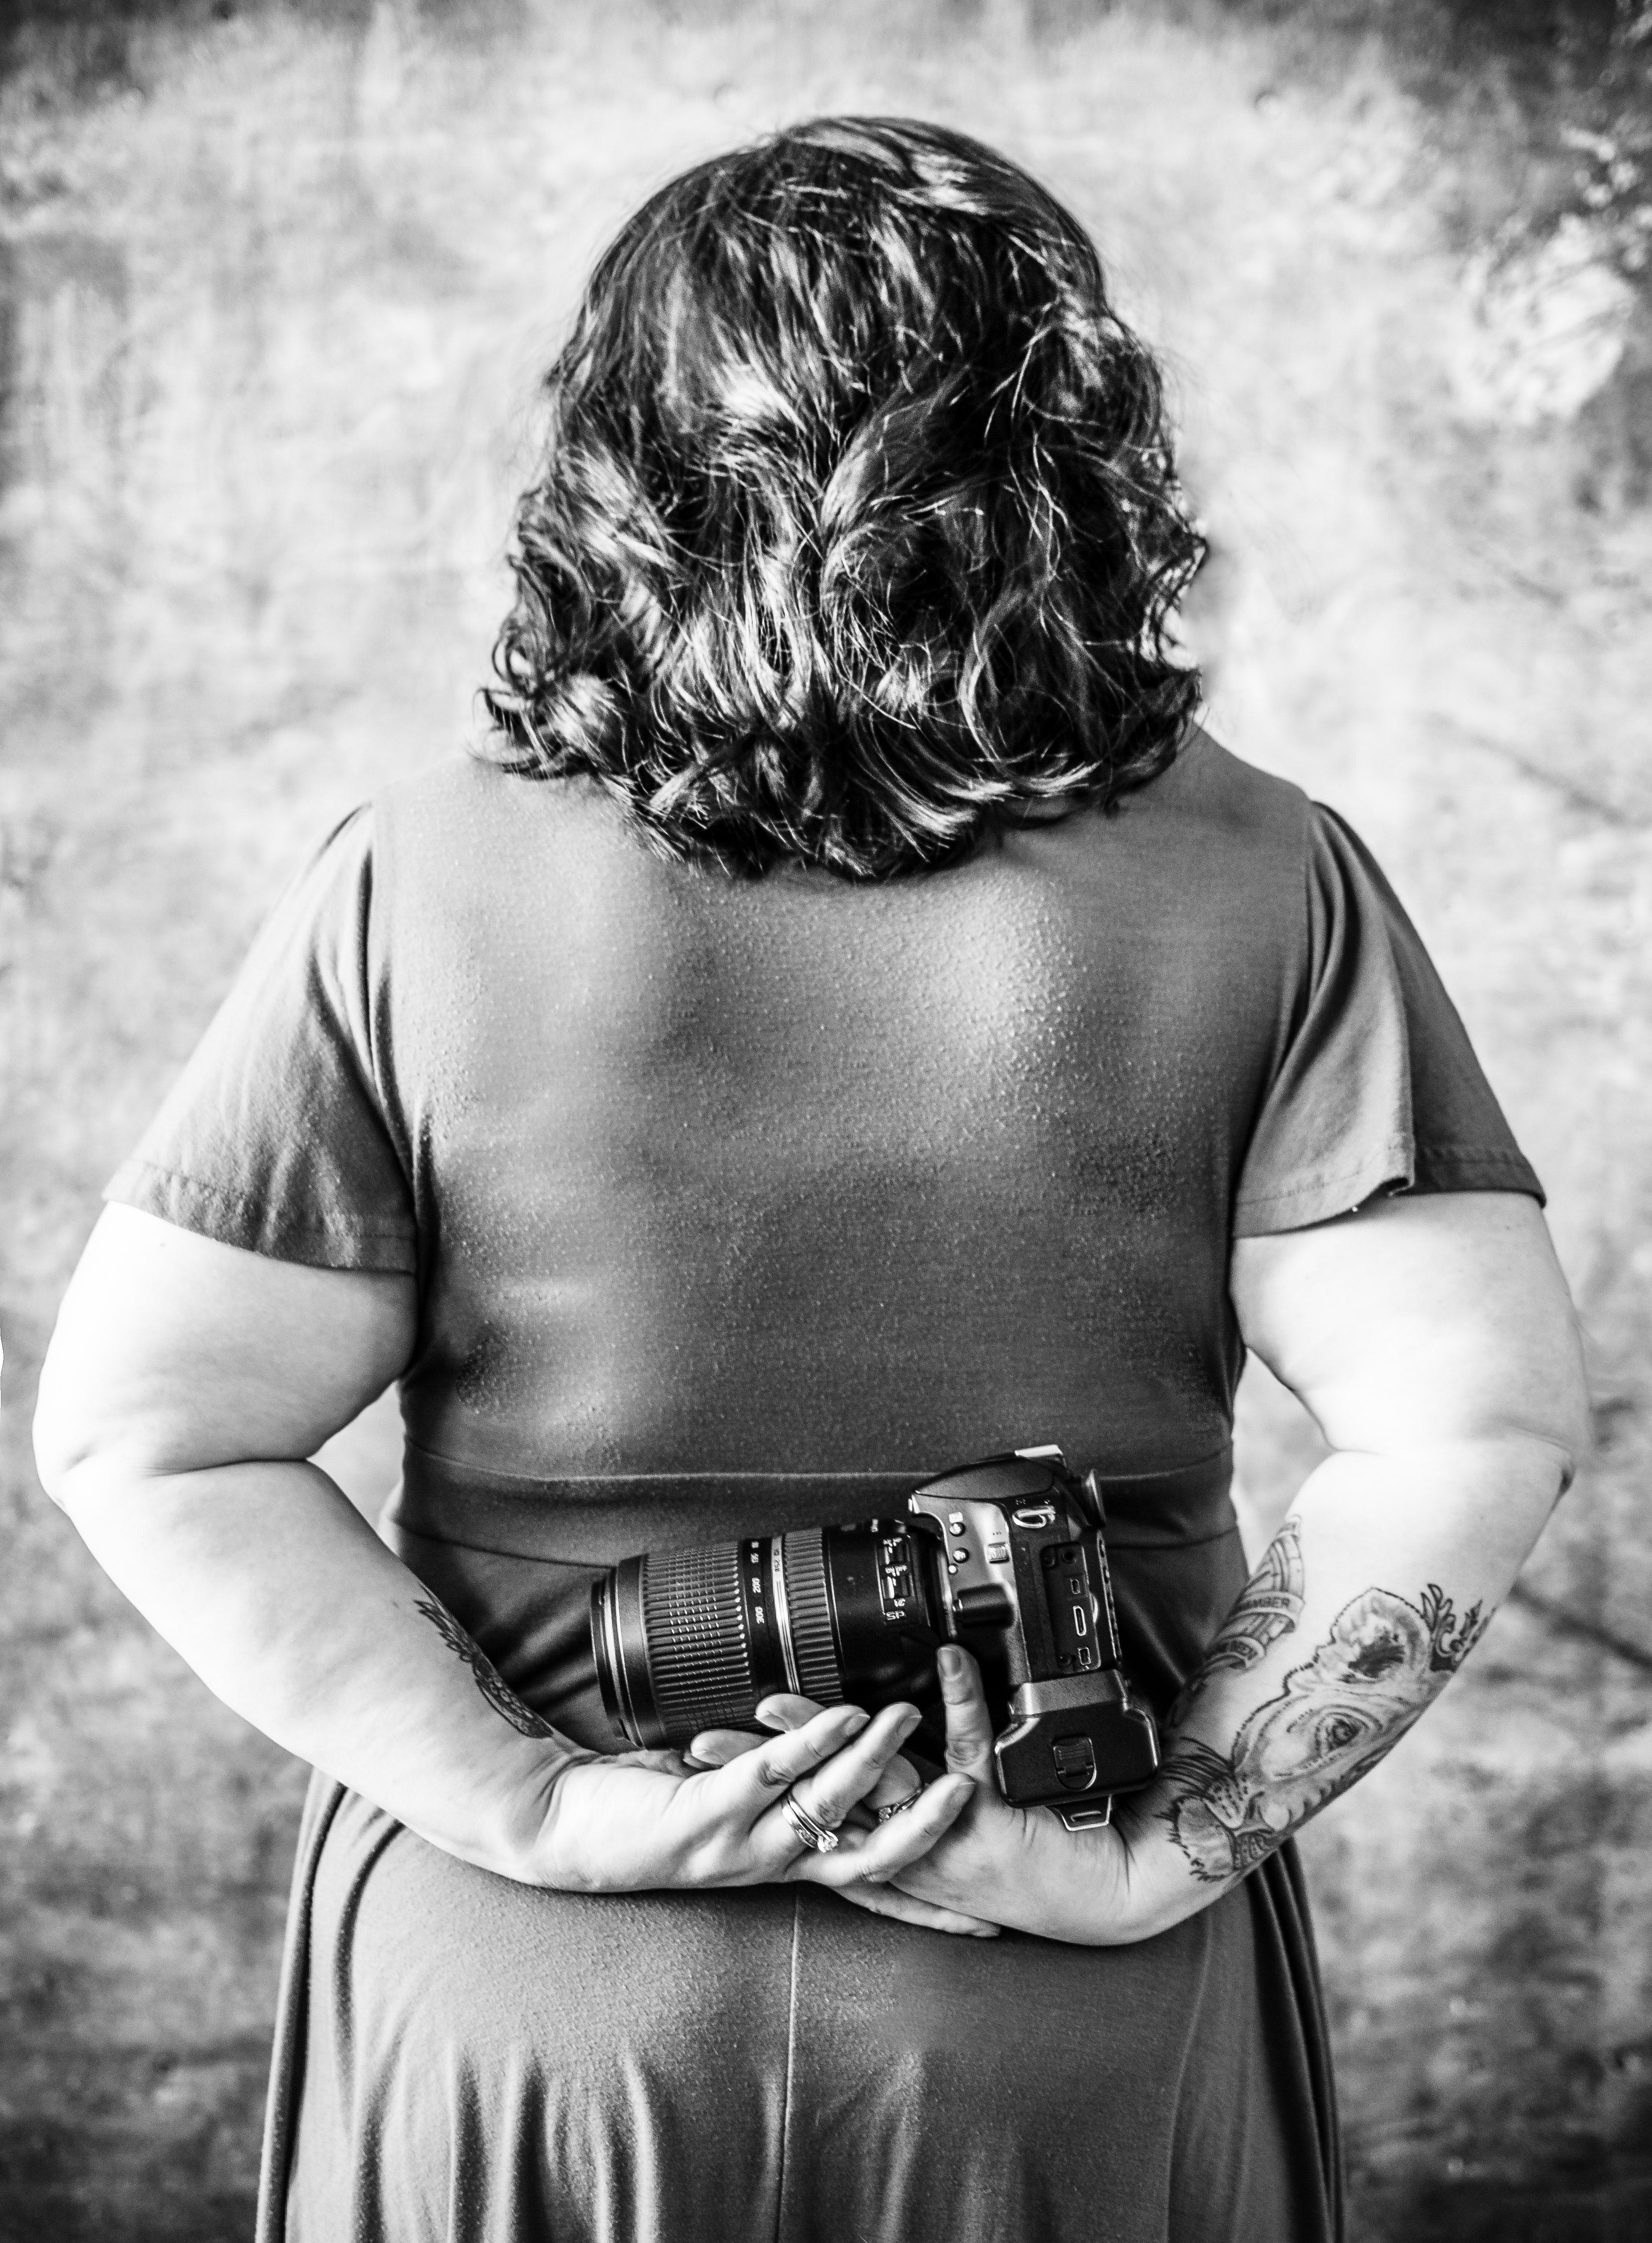 Free stock photo of black and white, from the back, portrait with camera, tattooed photographer